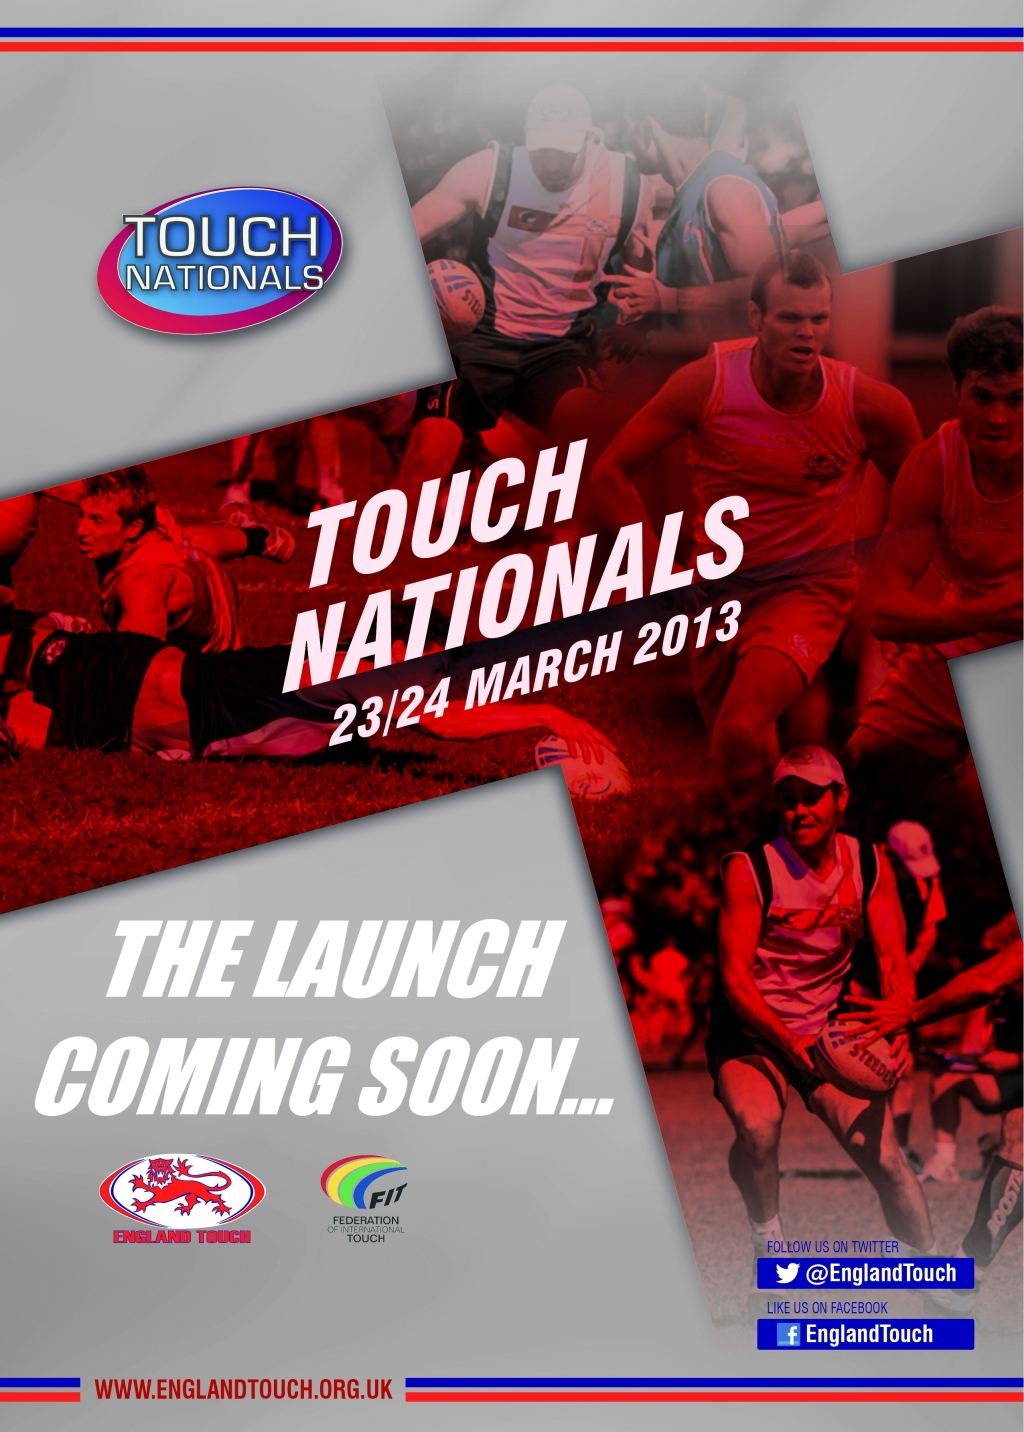 Touch Nationals